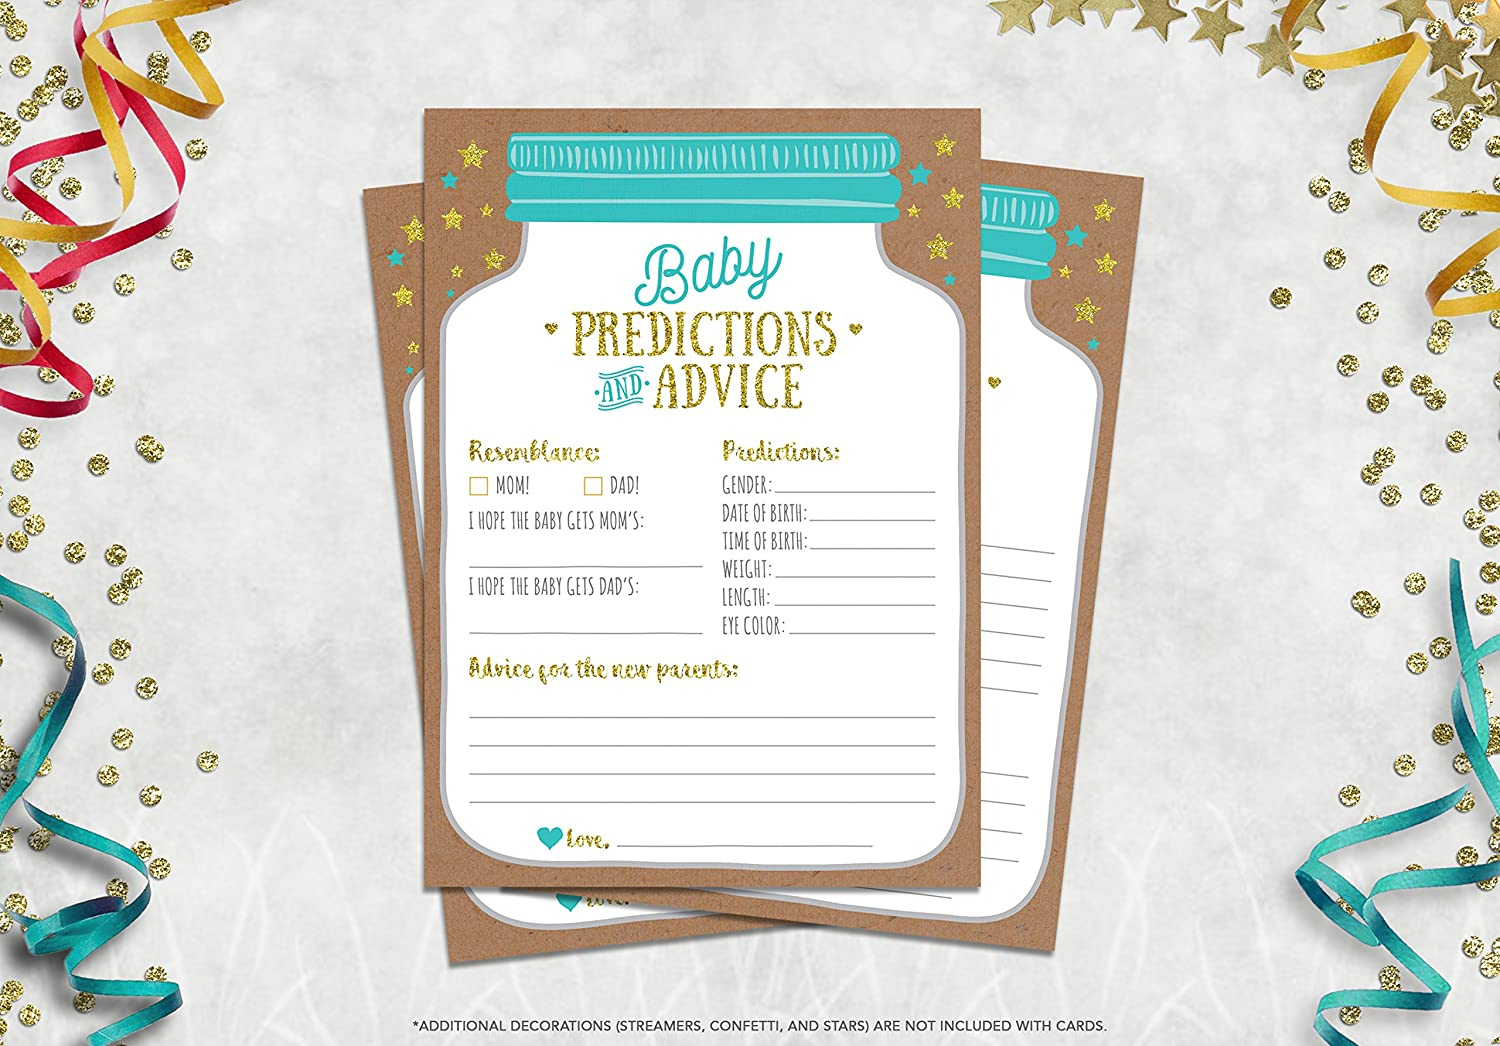 50 Mason Jar Baby Shower Prediction And Advice Cards Gender Neutral Boy Or Girl Baby Shower Games Favors Neatz Nbp0001 Event Party Supplies Invitations